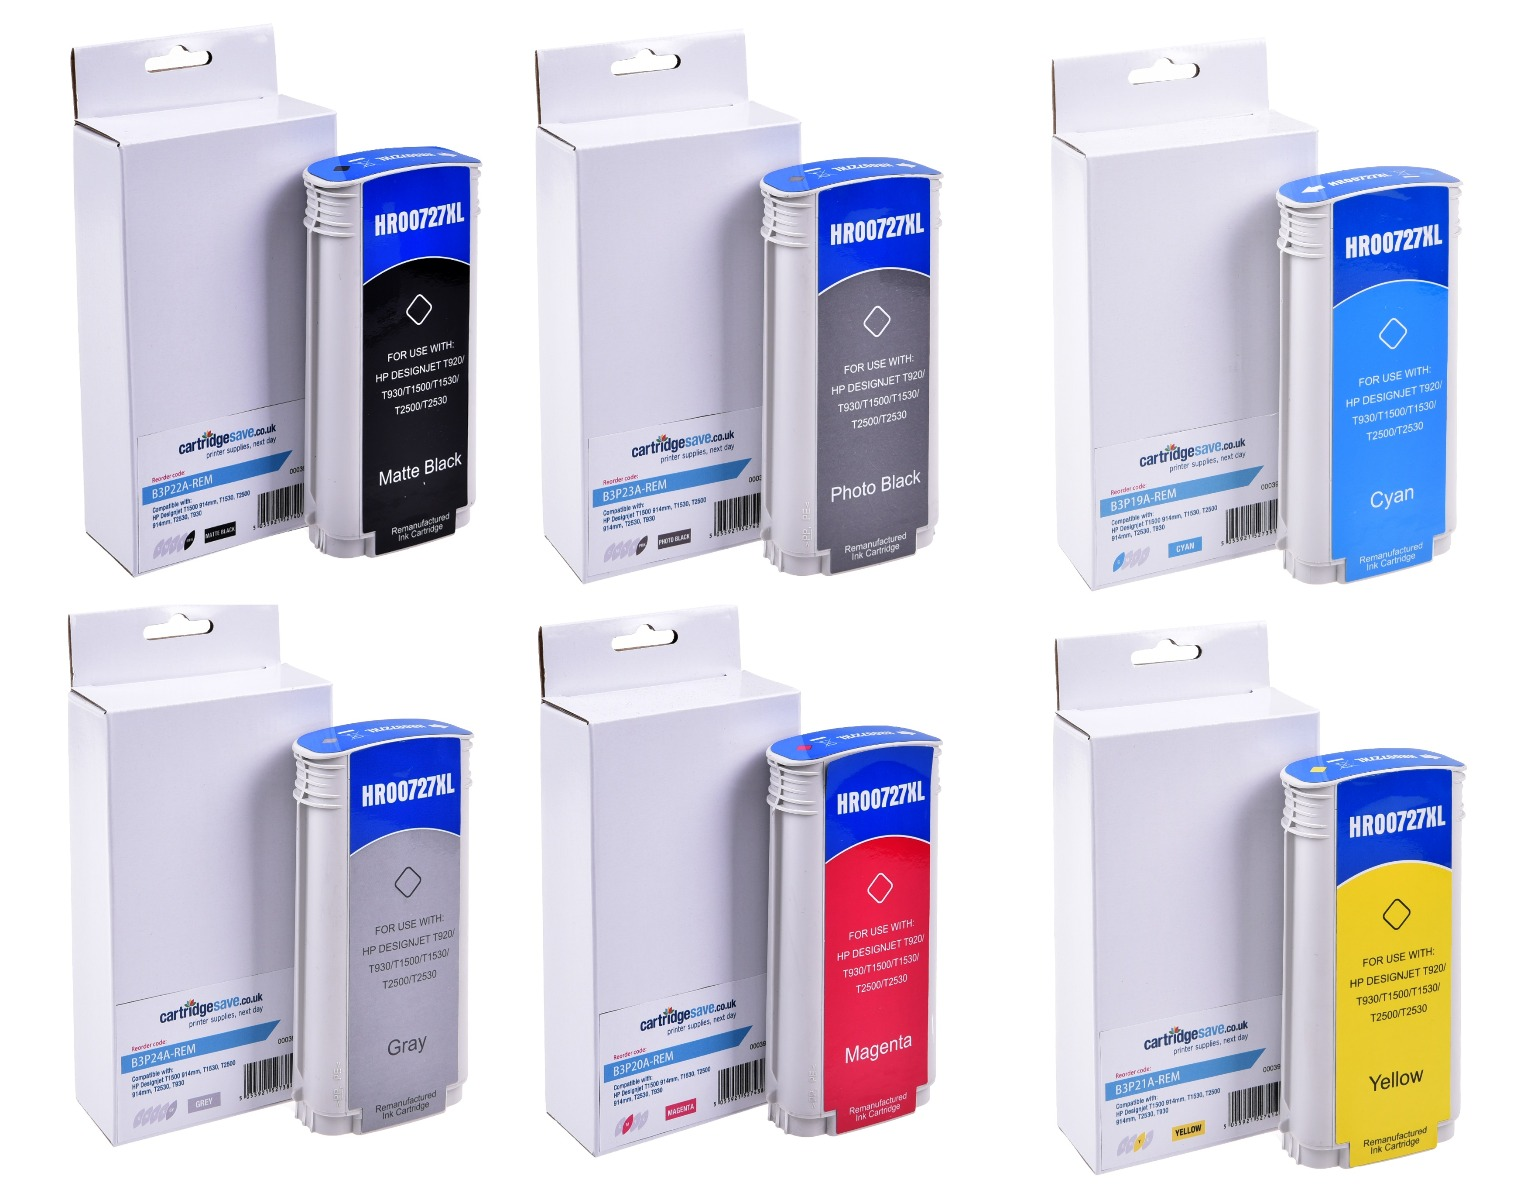 Compatible High Capacity HP 727 6 Colour Ink Cartridge Multipack - (B3P19A/B3P20A/B3P21A/B3P22A /B3P23A/B3P24A)